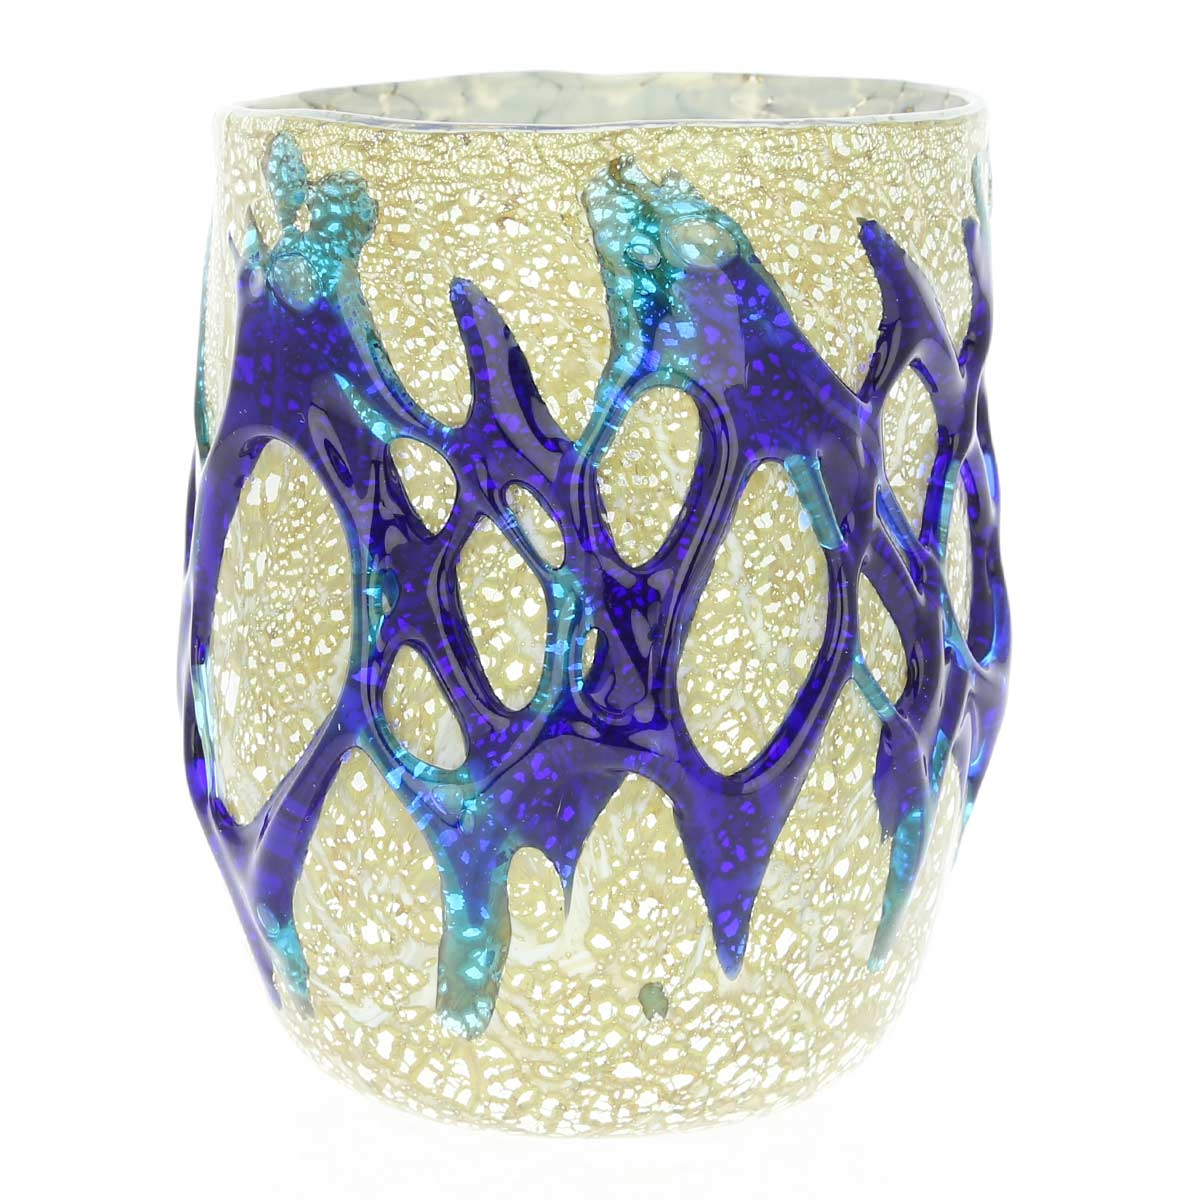 Murano Drinking Glass - Silver Leaf and Blue